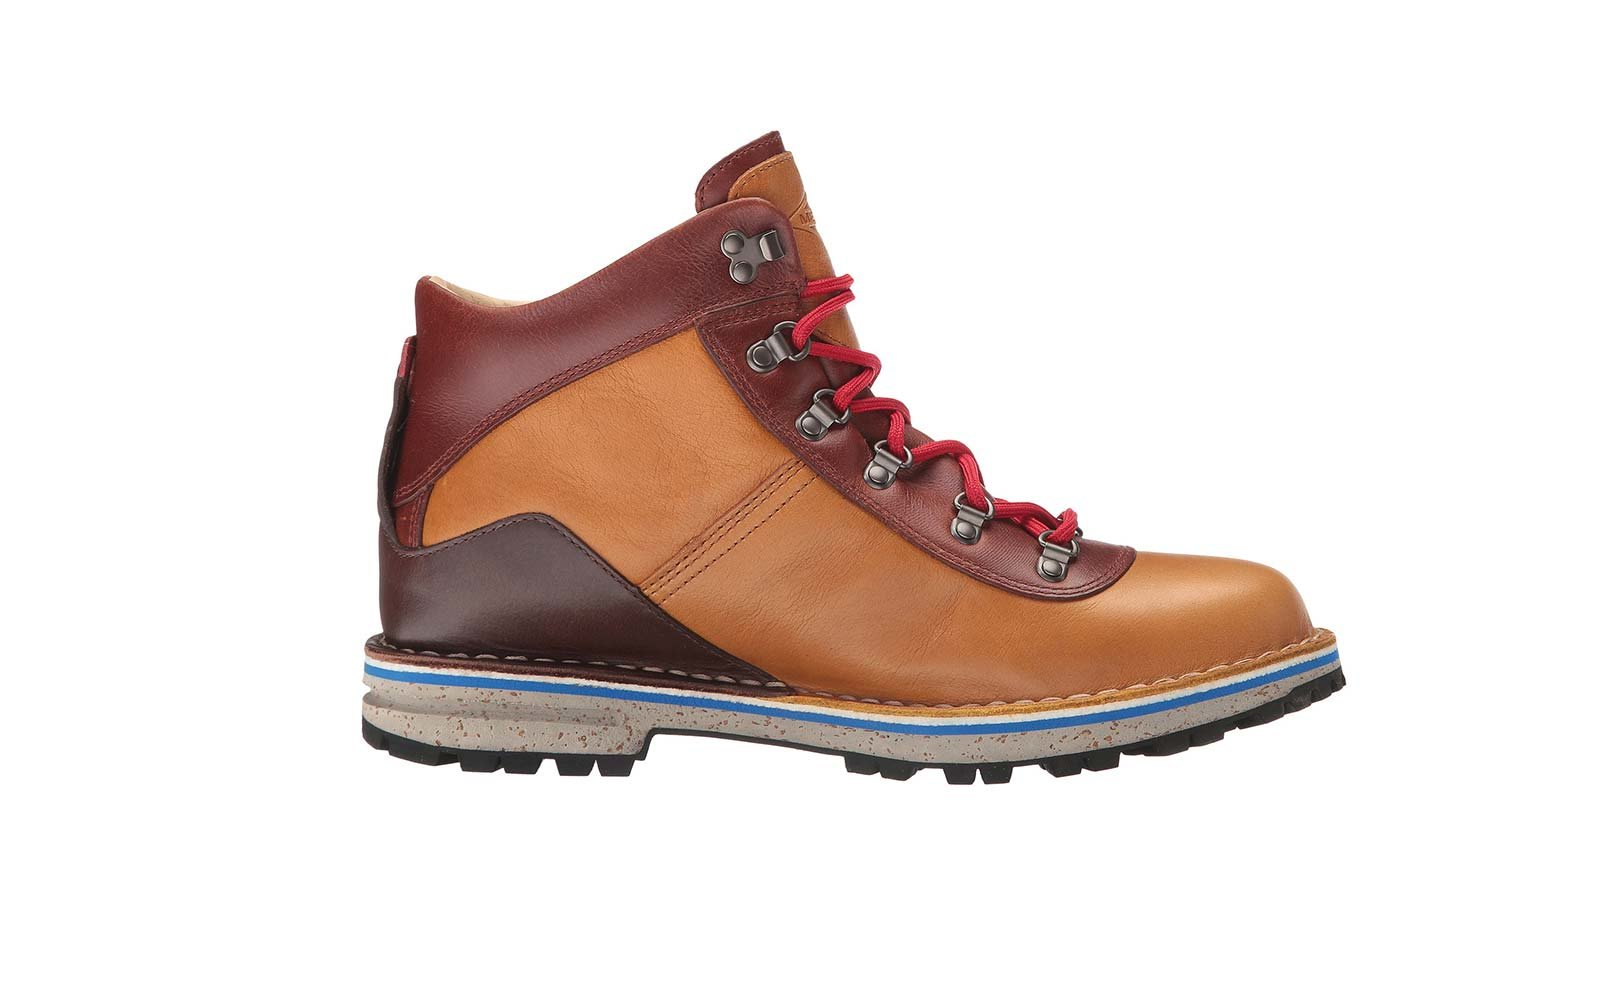 9 Cute Hiking Boots To Take You From Trail To Town